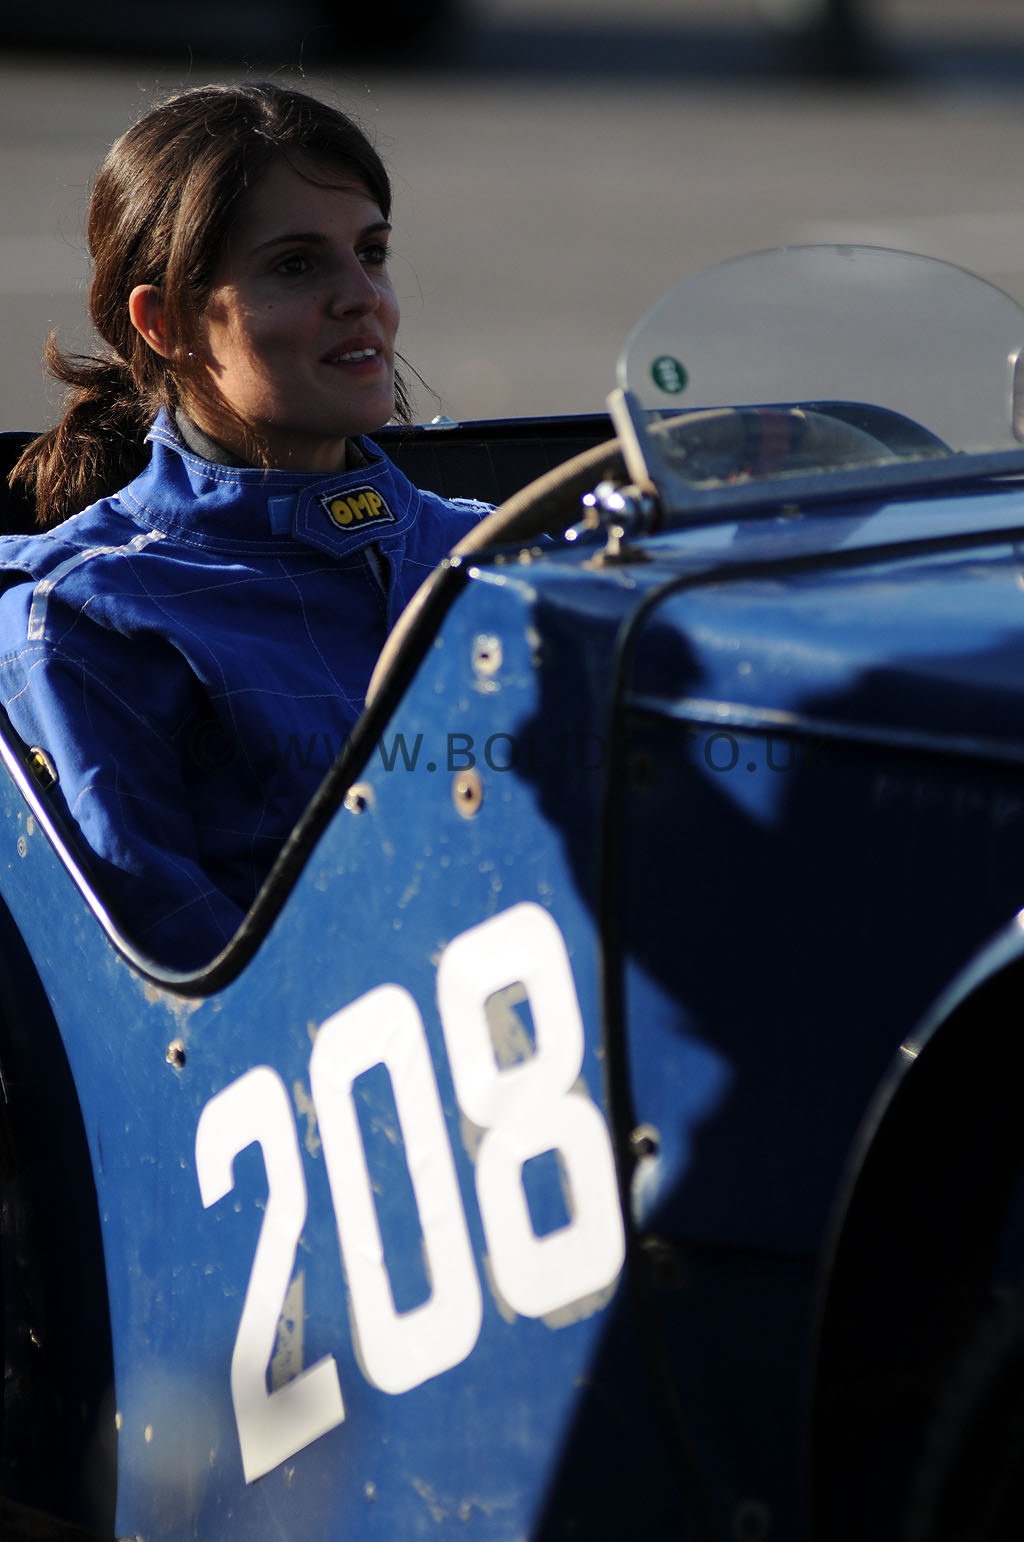 2011-vscc-goodwood-sprint-7481